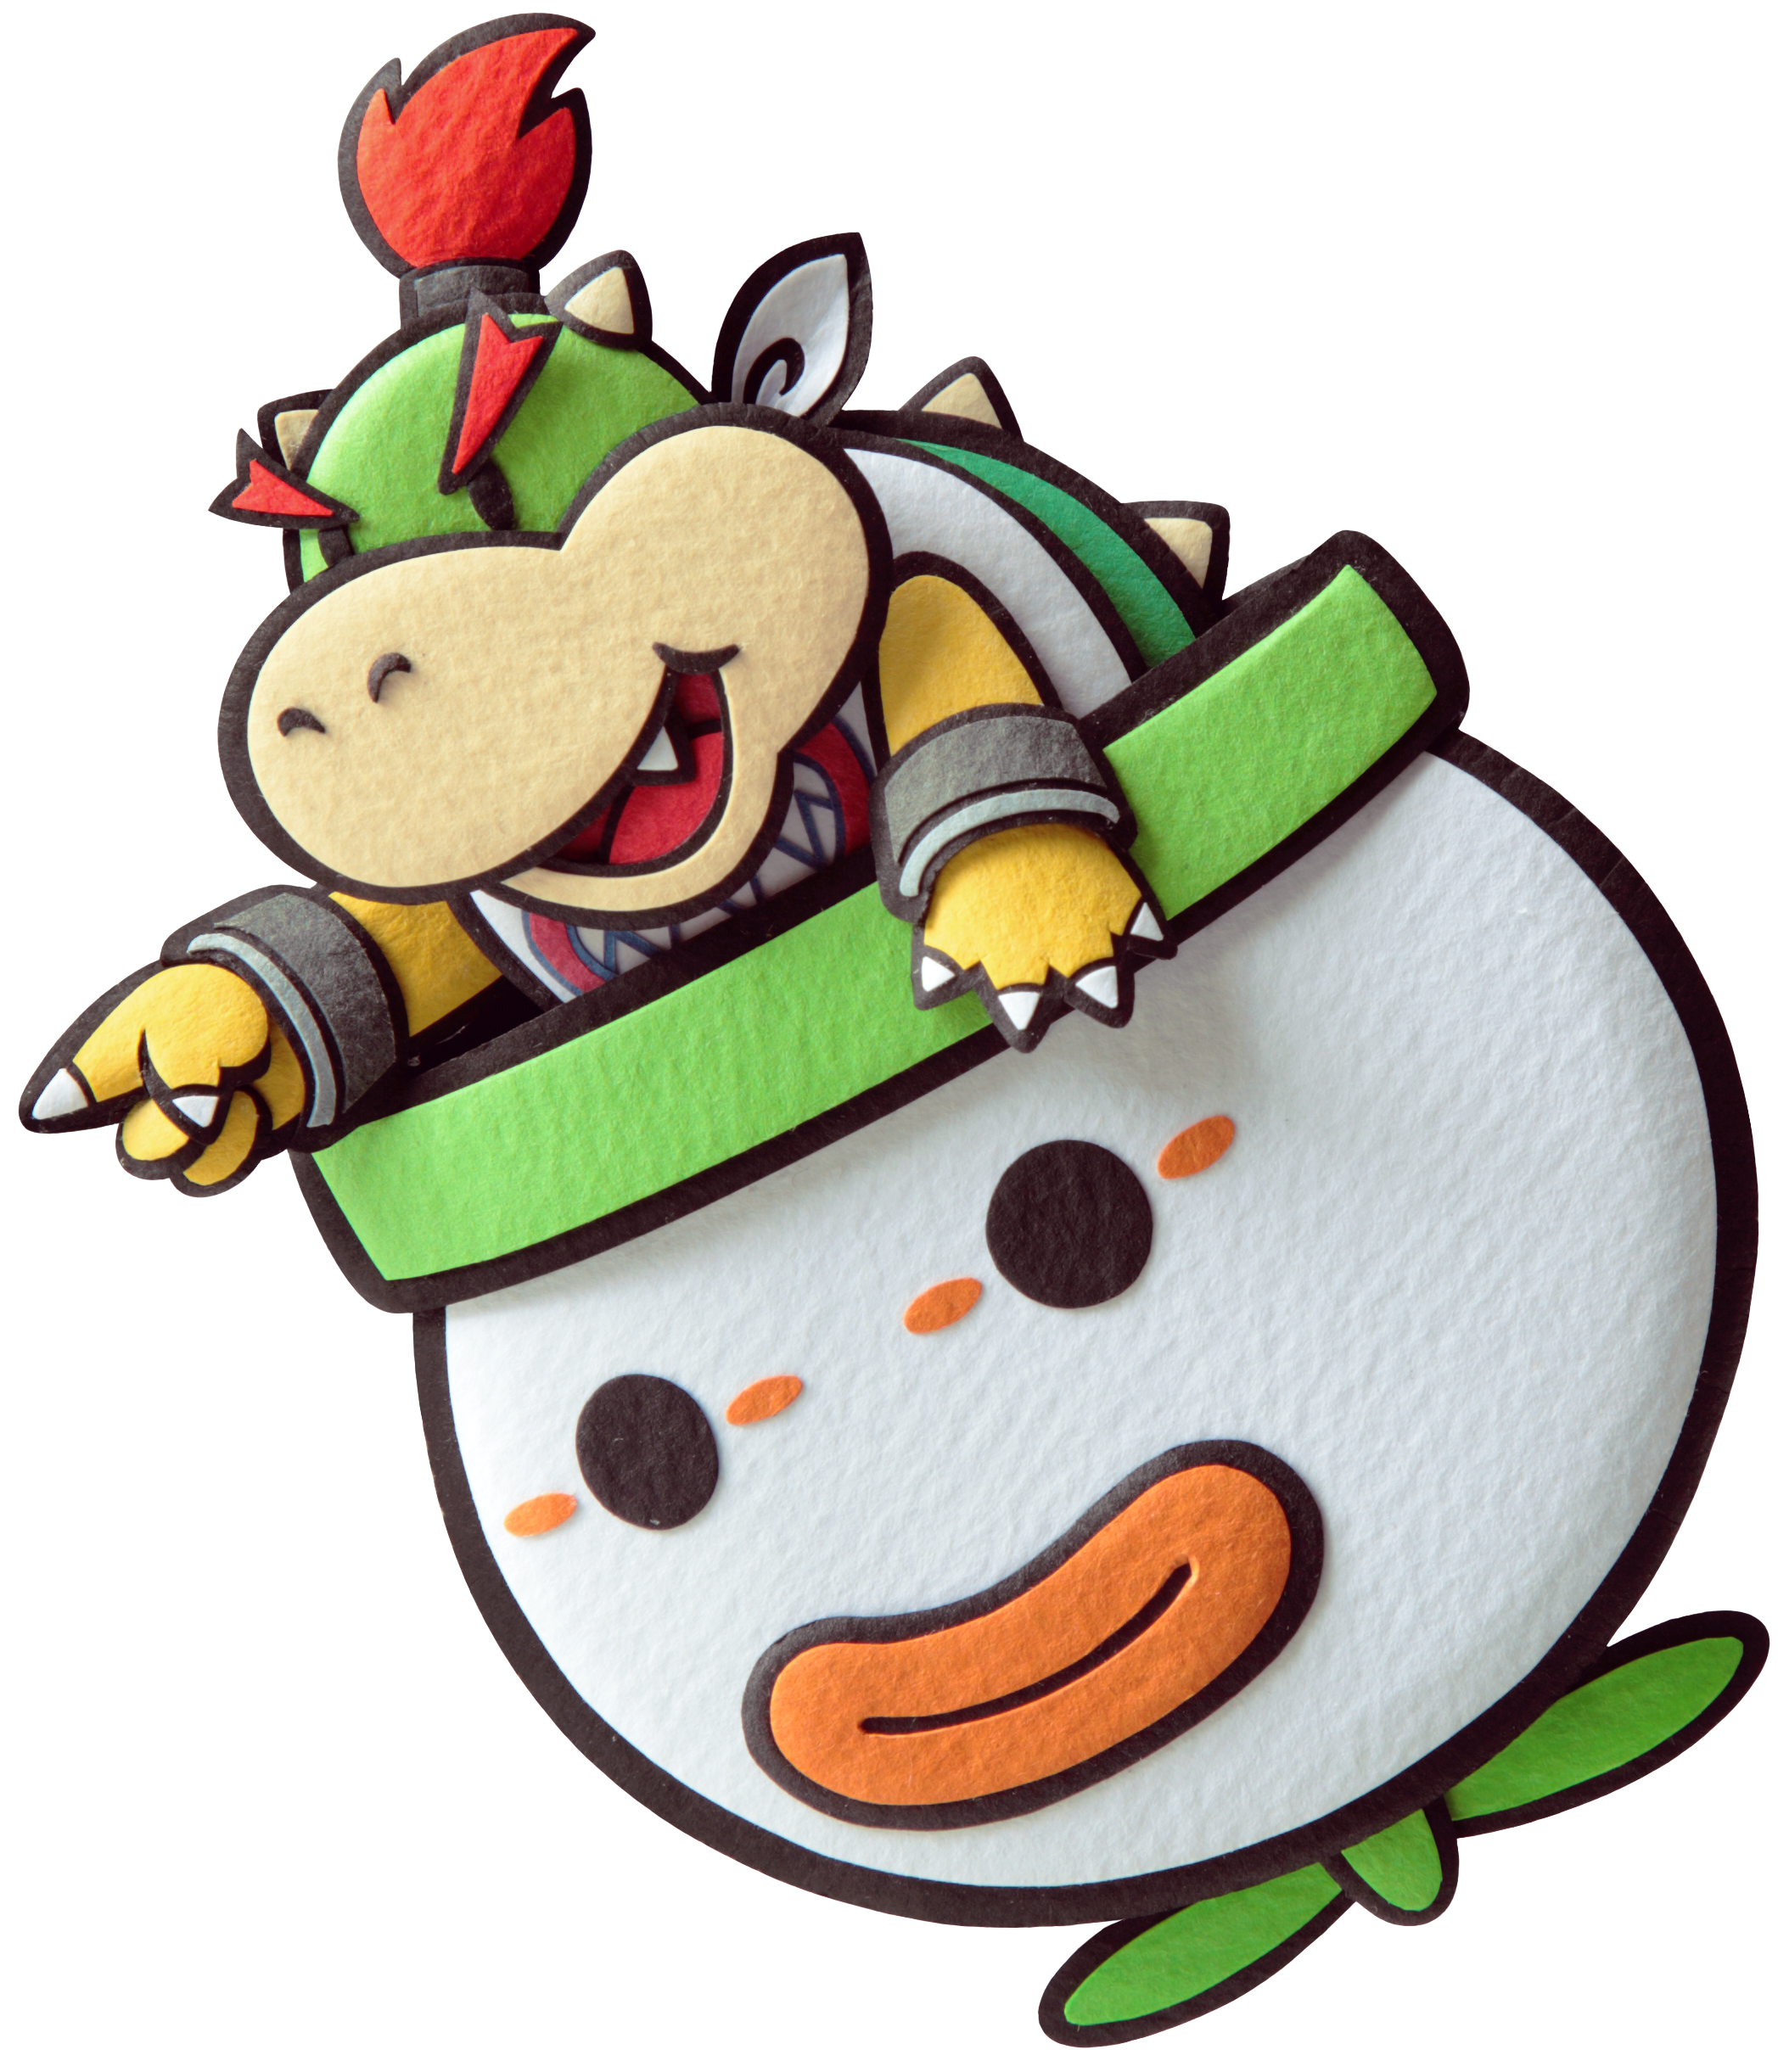 Star jump clipart image royalty free library Bowser Jr. | MarioWiki | FANDOM powered by Wikia image royalty free library